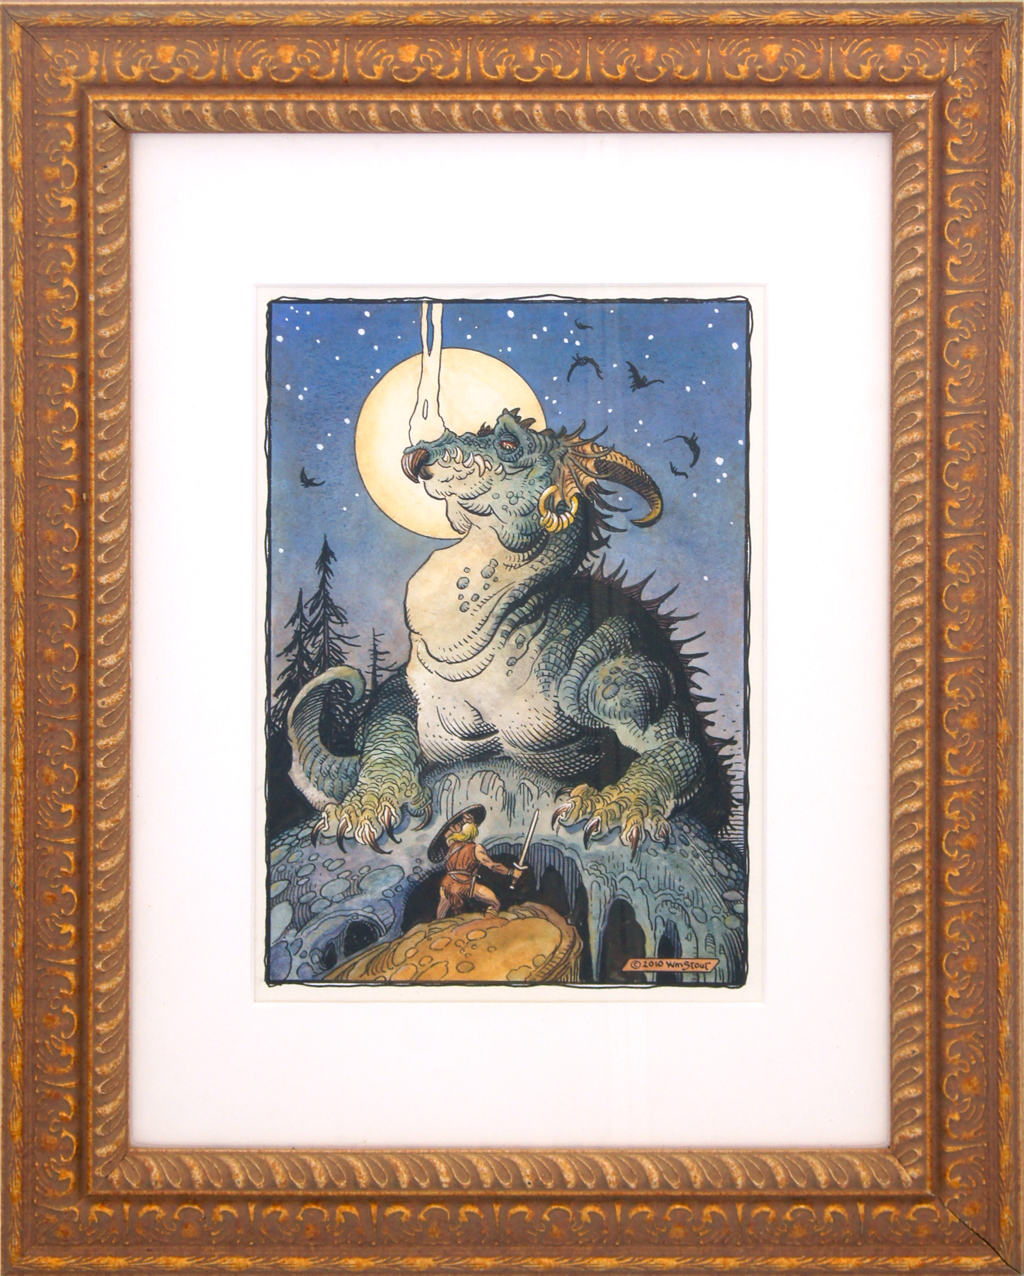 """American Legacy Fine Arts presents """"Siegfried and Fafnir"""" a painting by William Stout"""